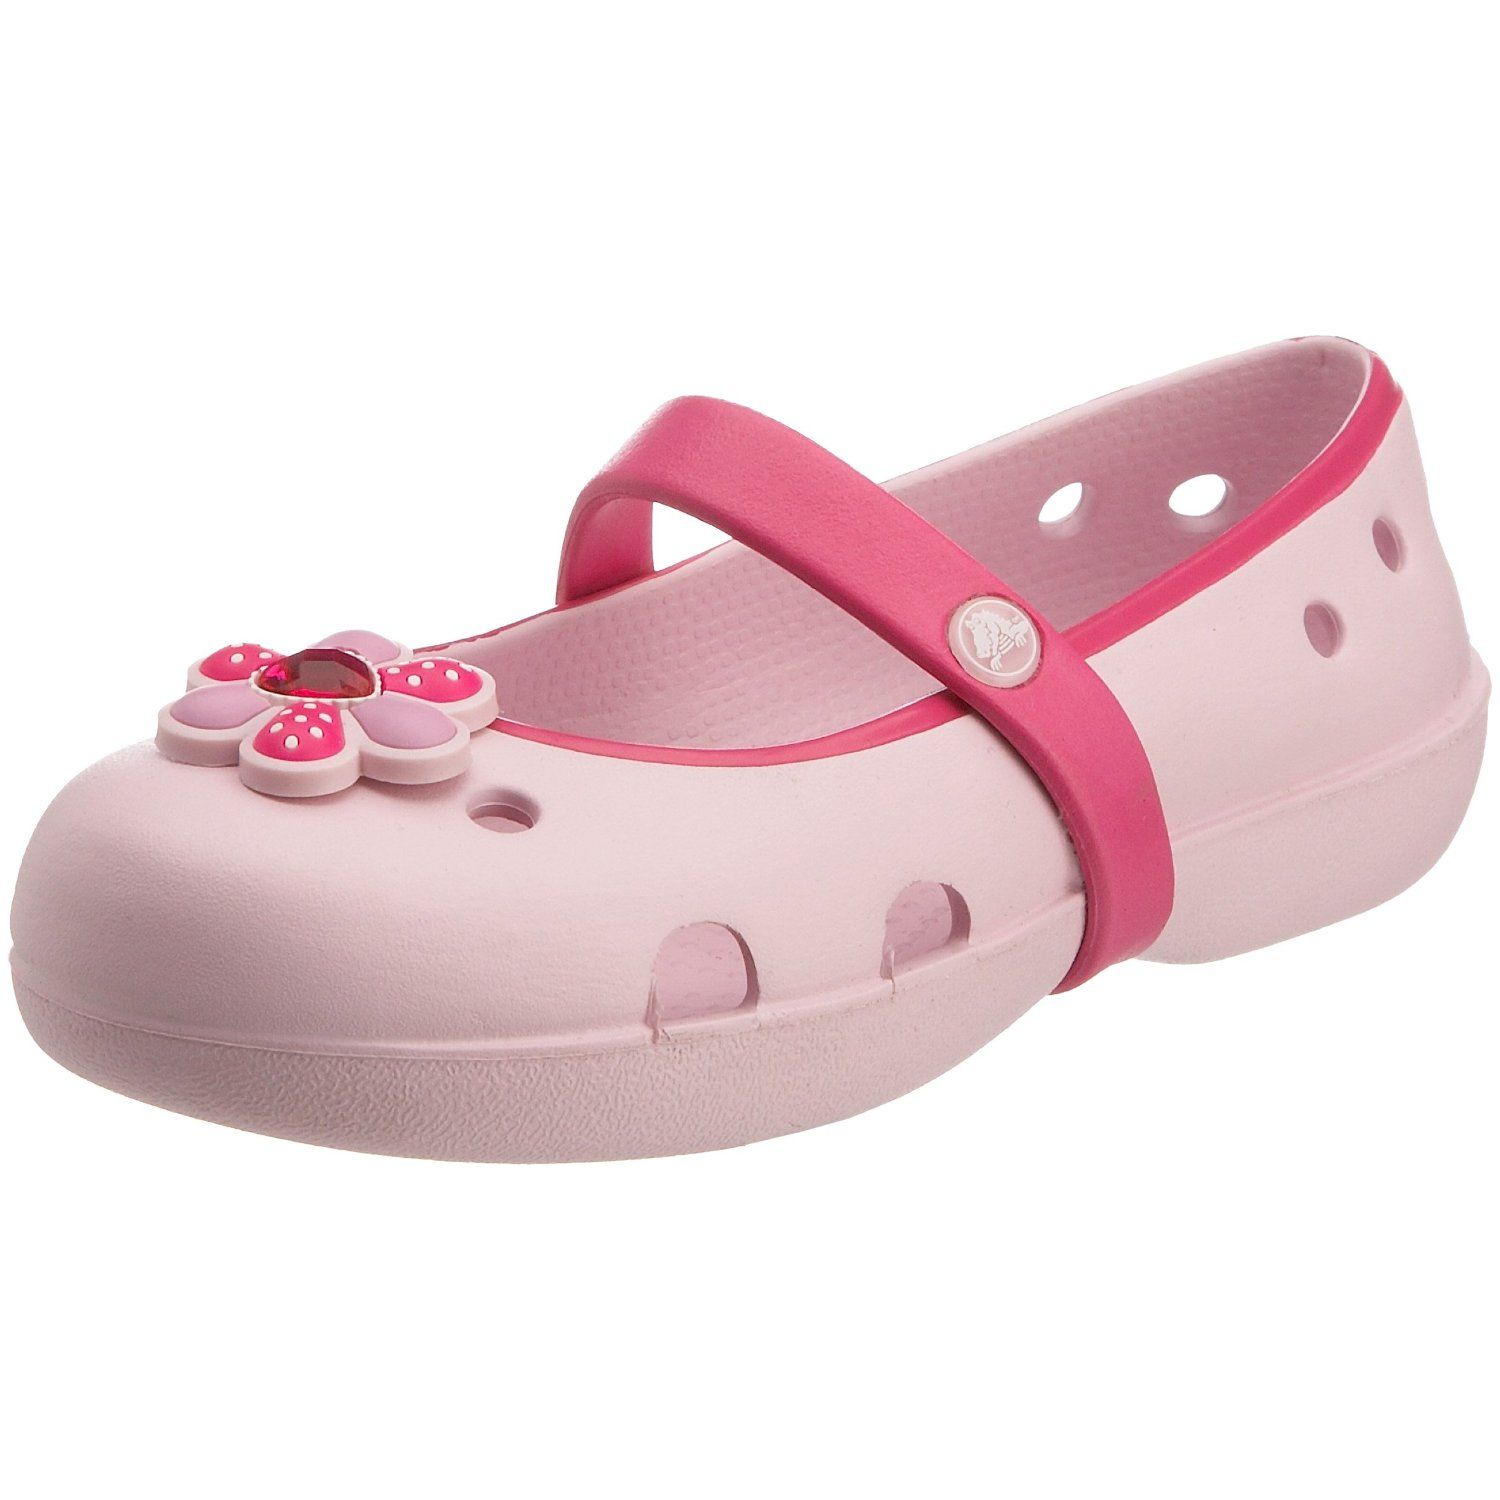 6a6fcfb11 crocs Keeley Mary Jane (Toddler Little Kid)